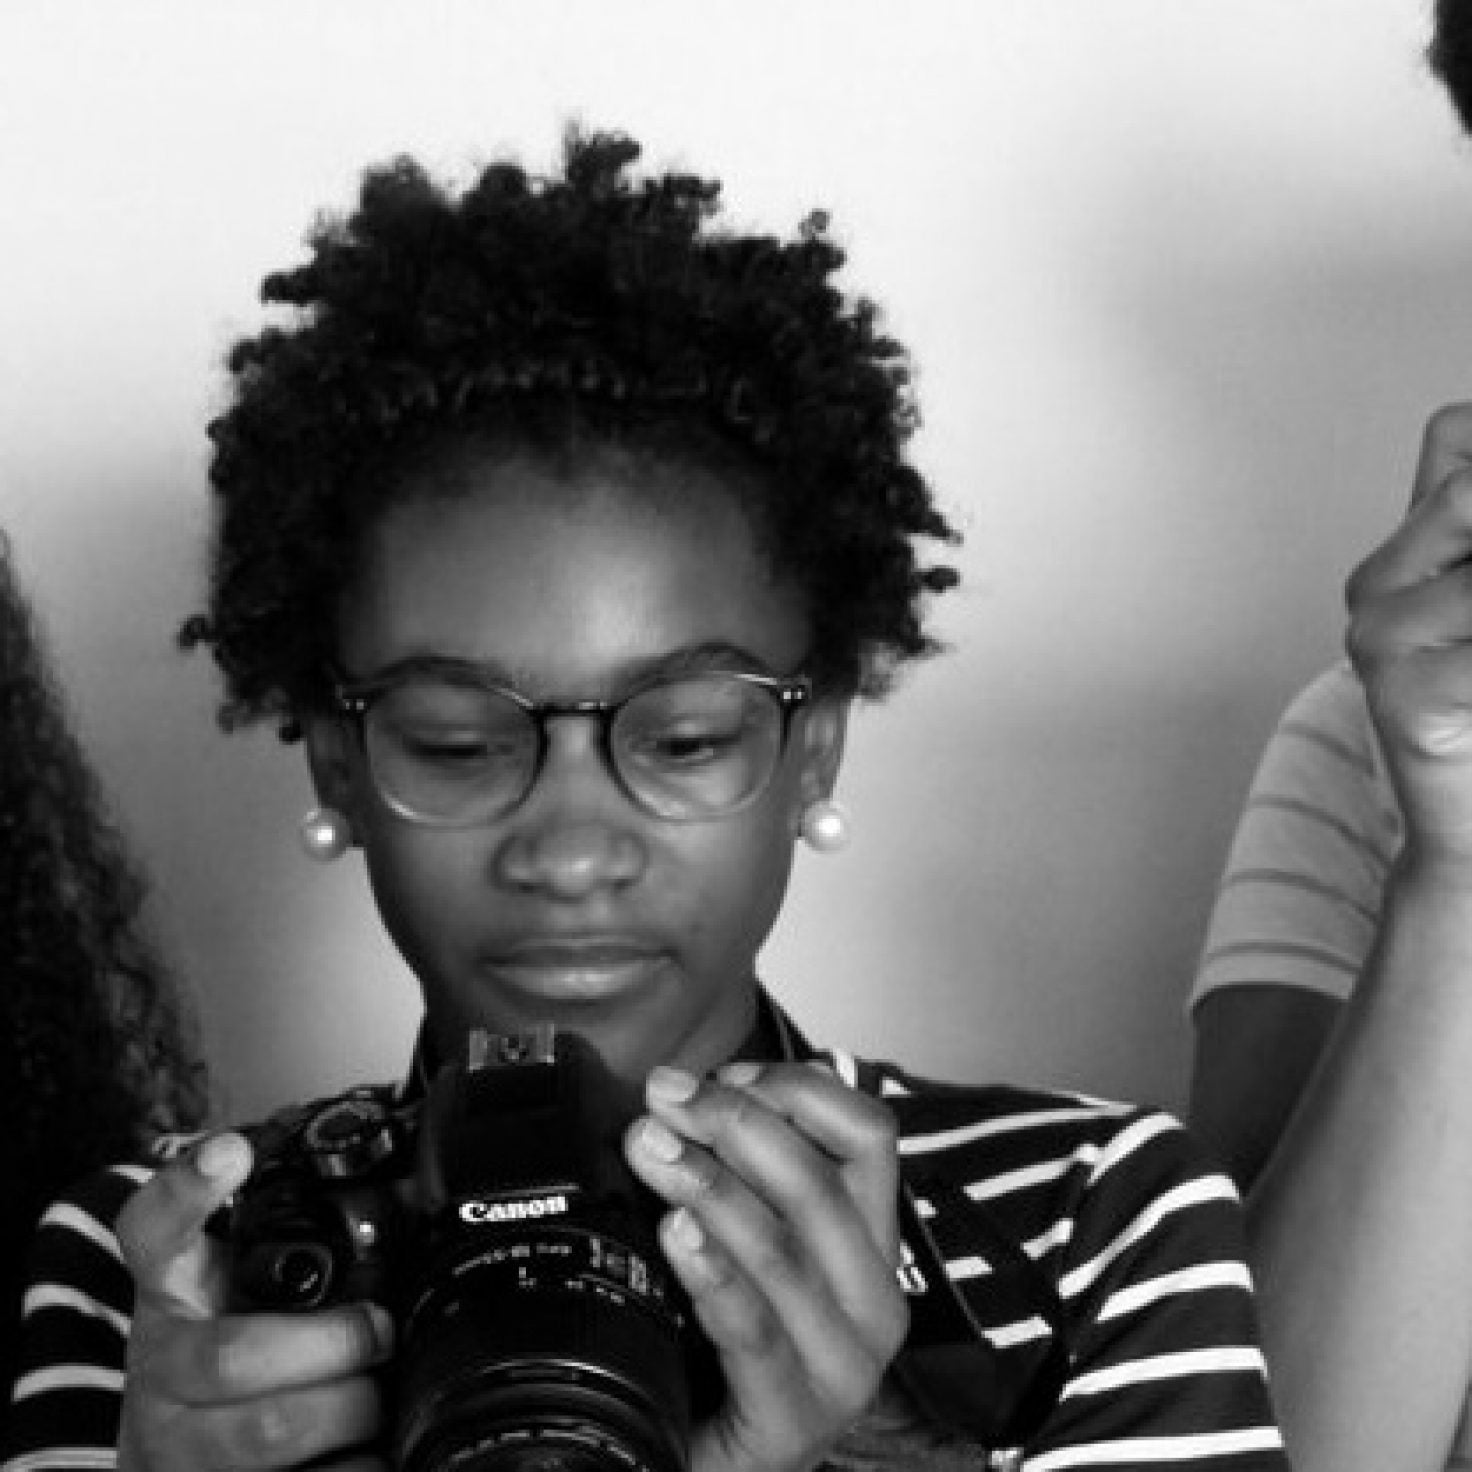 See This Exhibit Before It Goes: Black Girl Magic Is On Display At The Metropolitan Museum of Art